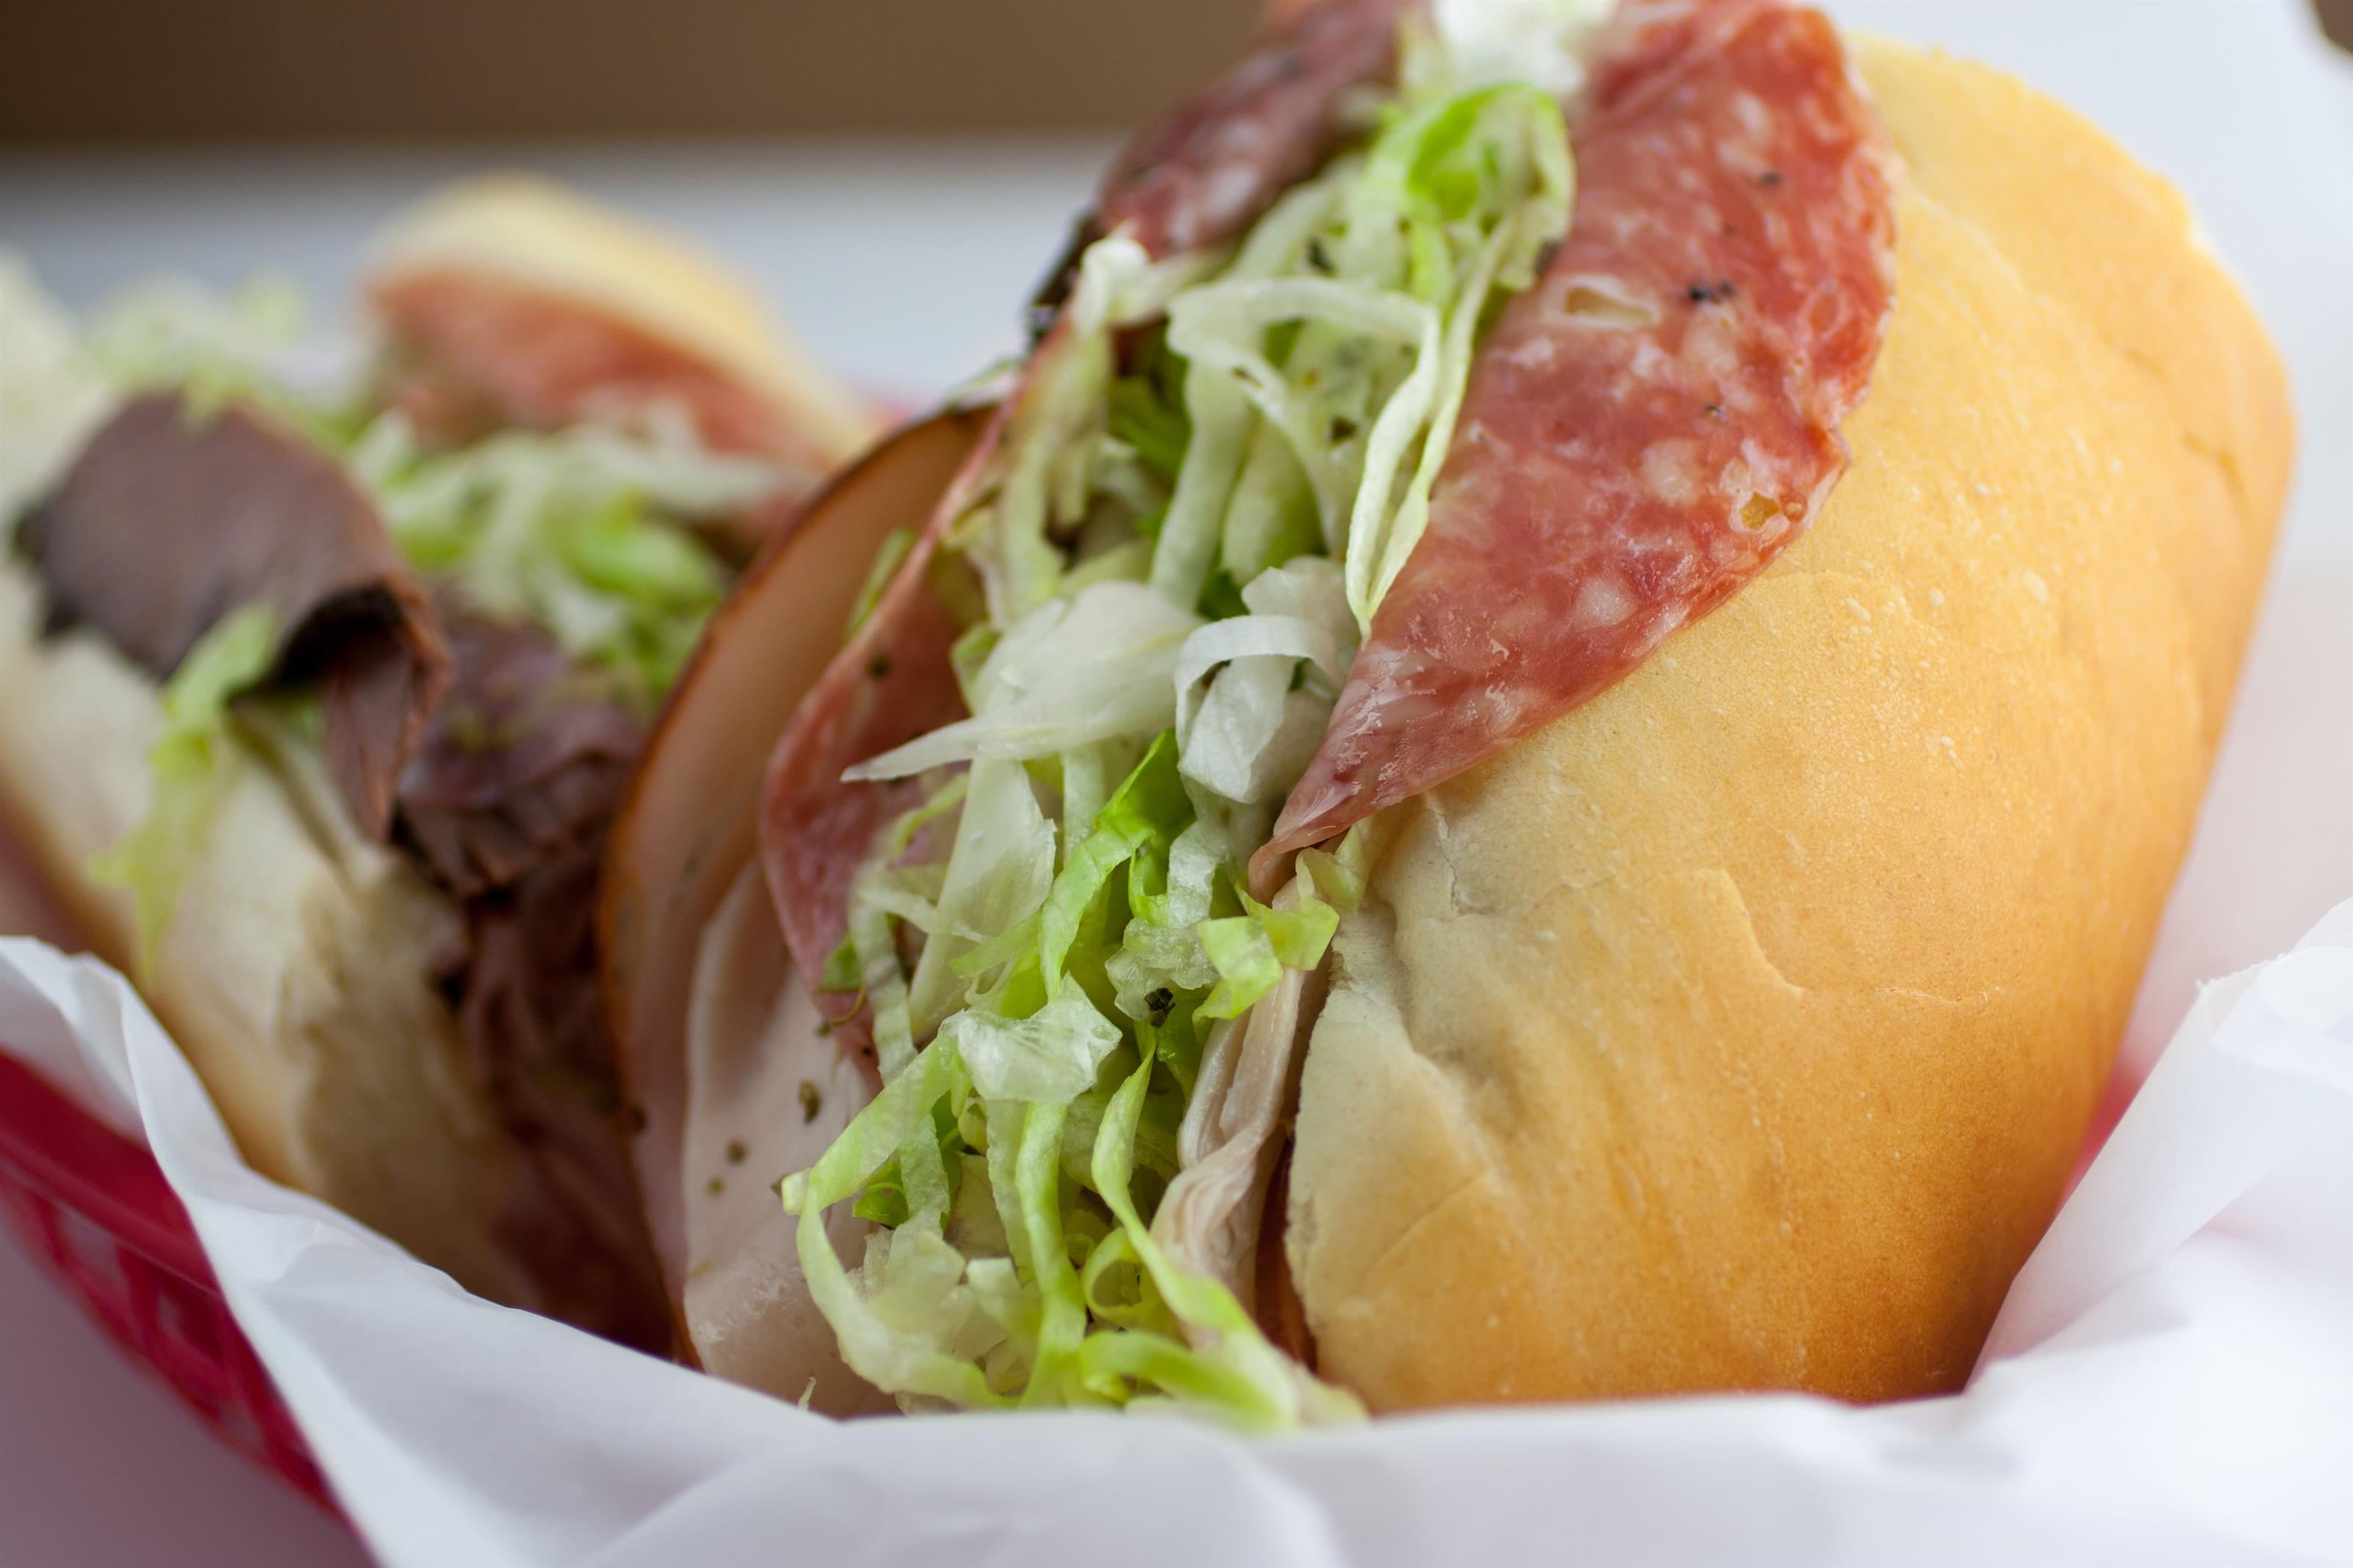 Italian Meat Sandwich on roll, with lettuce